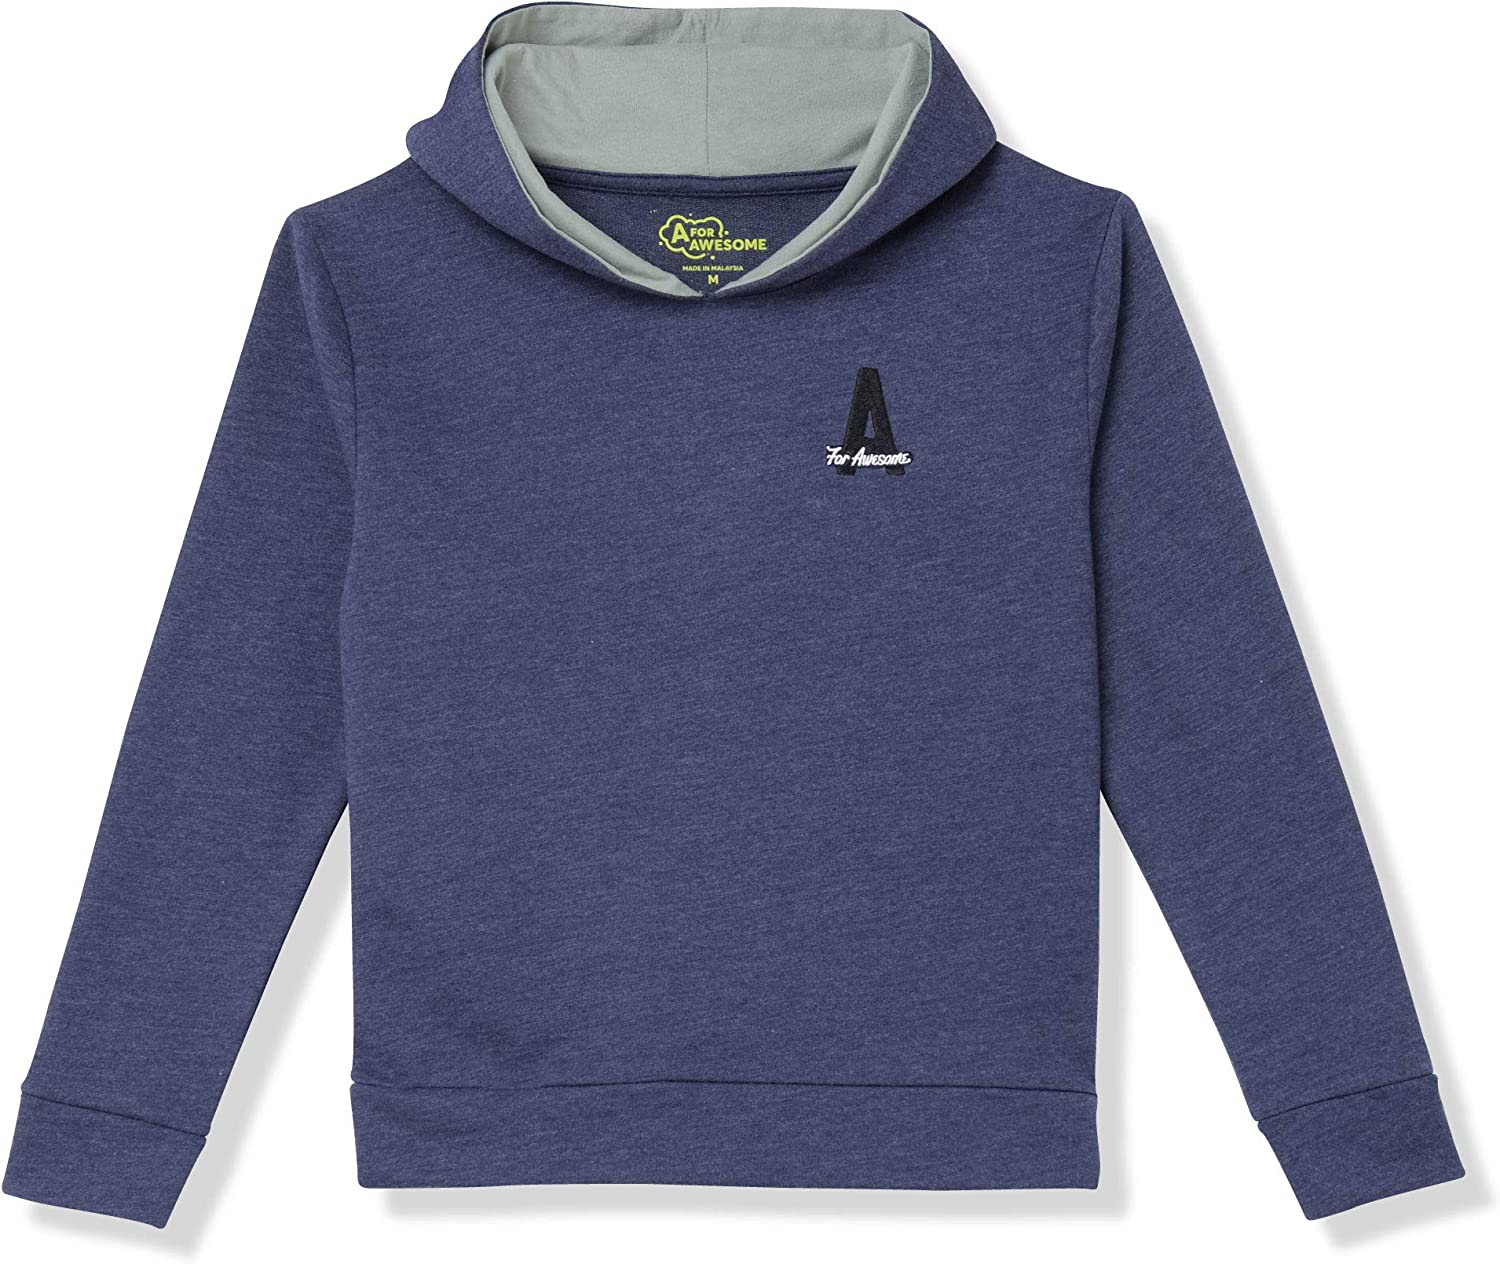 A for Awesome Boys Long Max 55% Cheap bargain OFF Hoodie Pullover Sweatshirt Sleeve